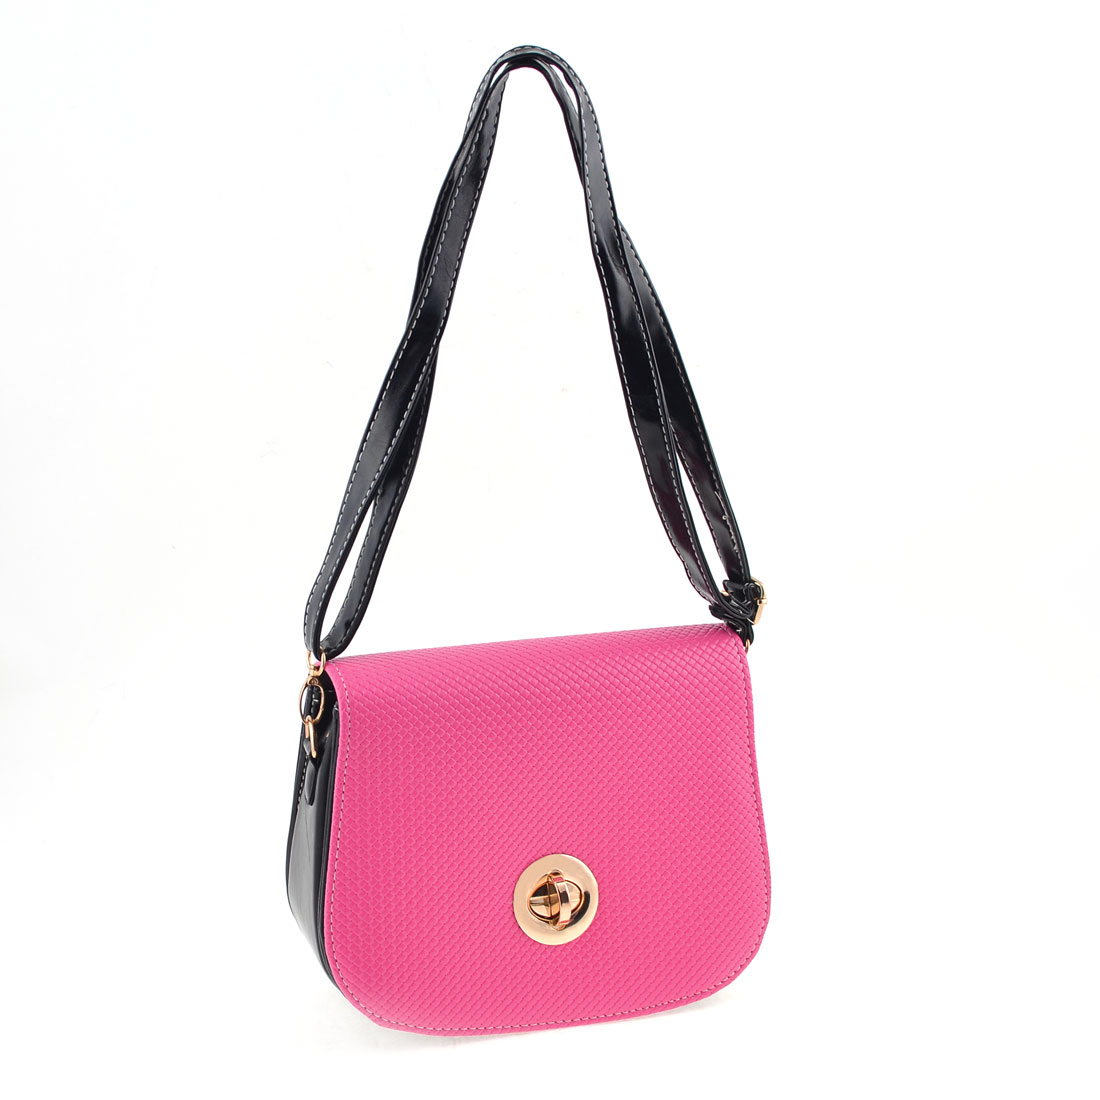 Lady Magnetic Flap Closure Alligator Pattern Shoulder Bag Handbag Fuchsia Black